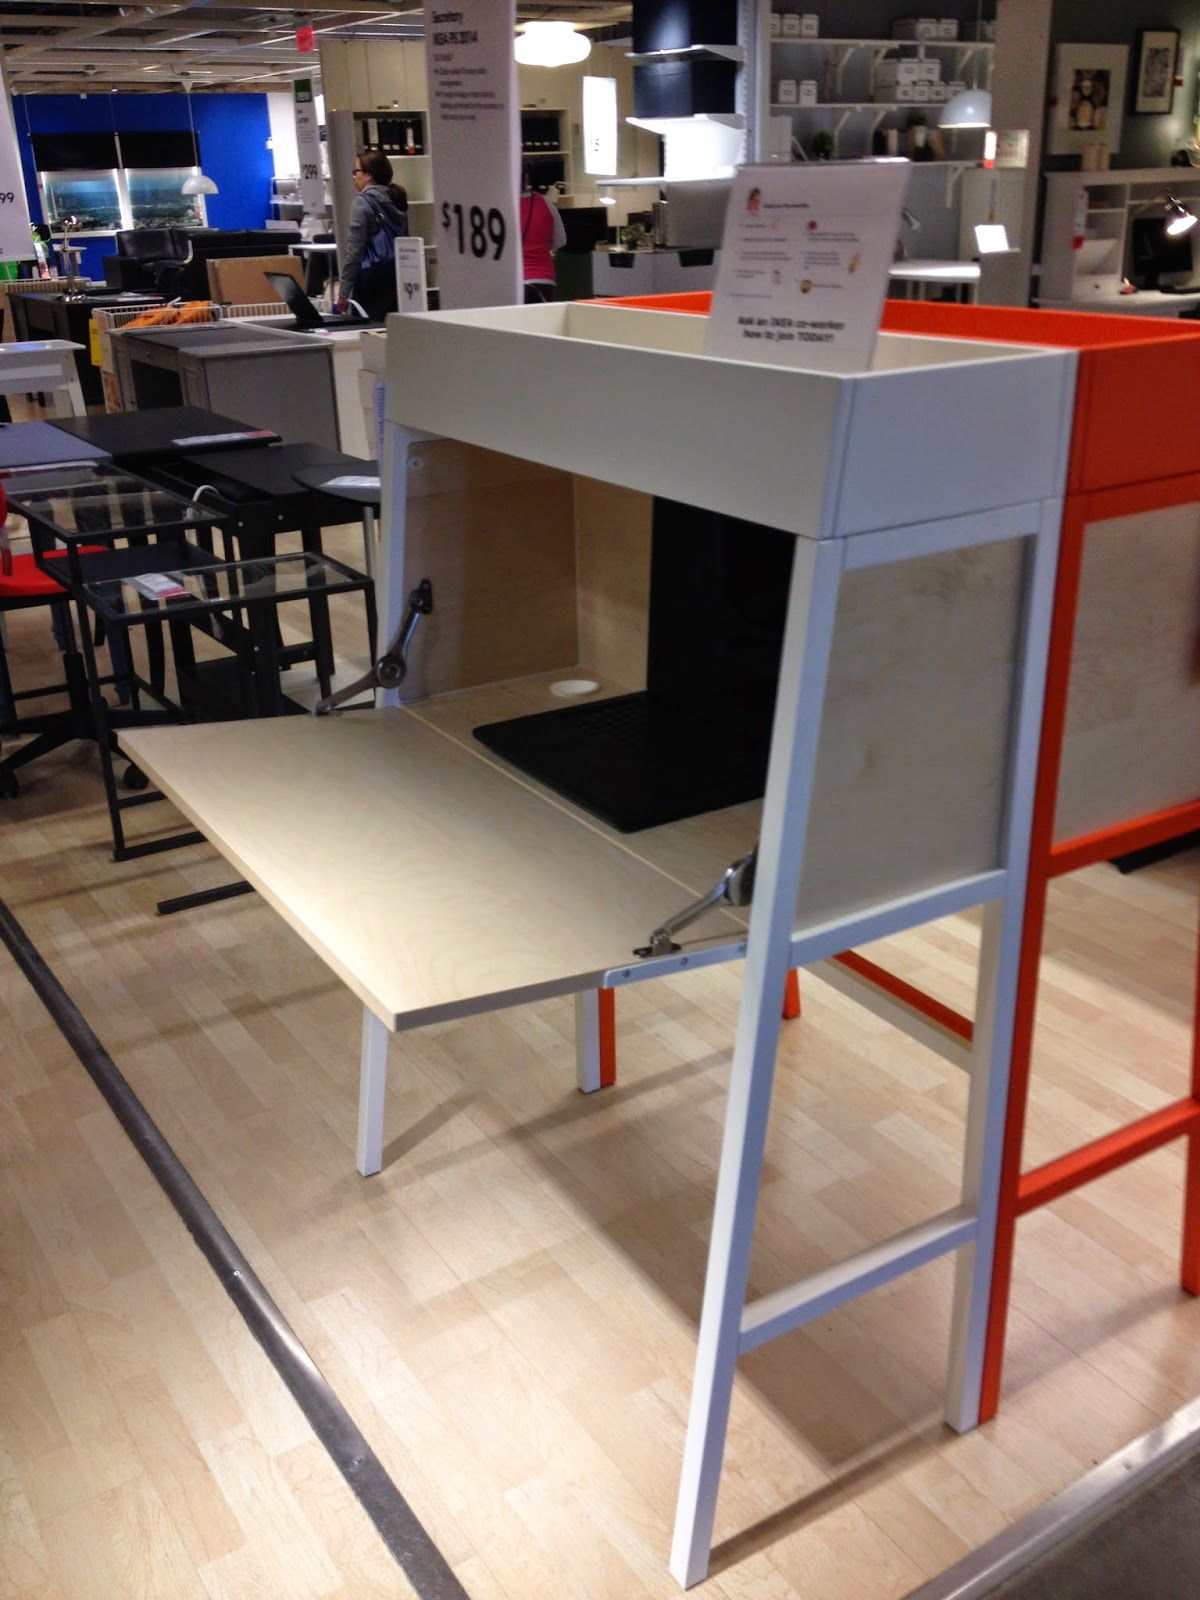 This Is Another Ikea Ps Piece But I Could Not Find It On The Website Was With Desks And Office Furniture In